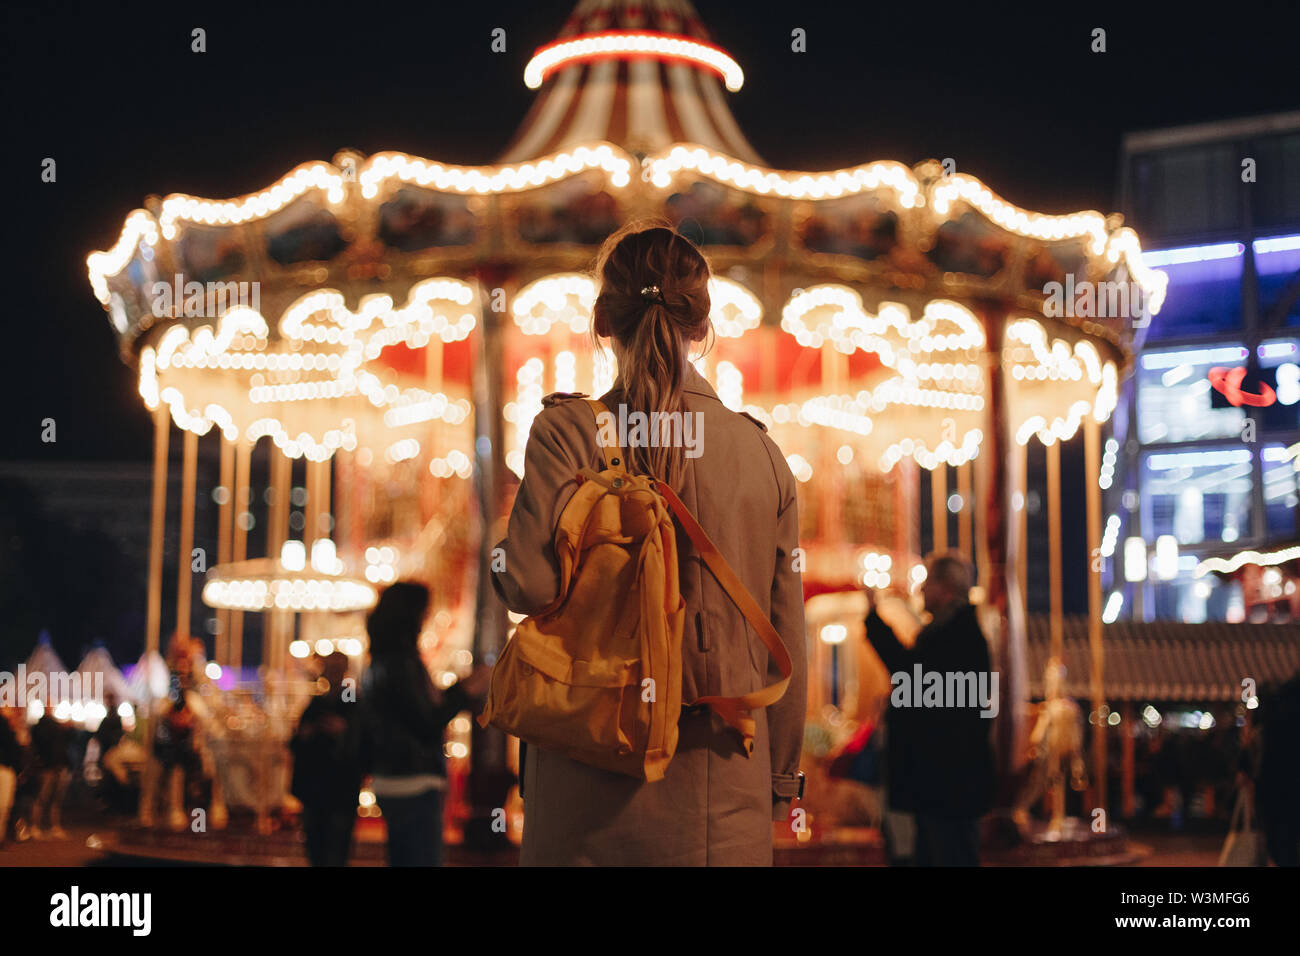 Young woman by carousel at night - Stock Image